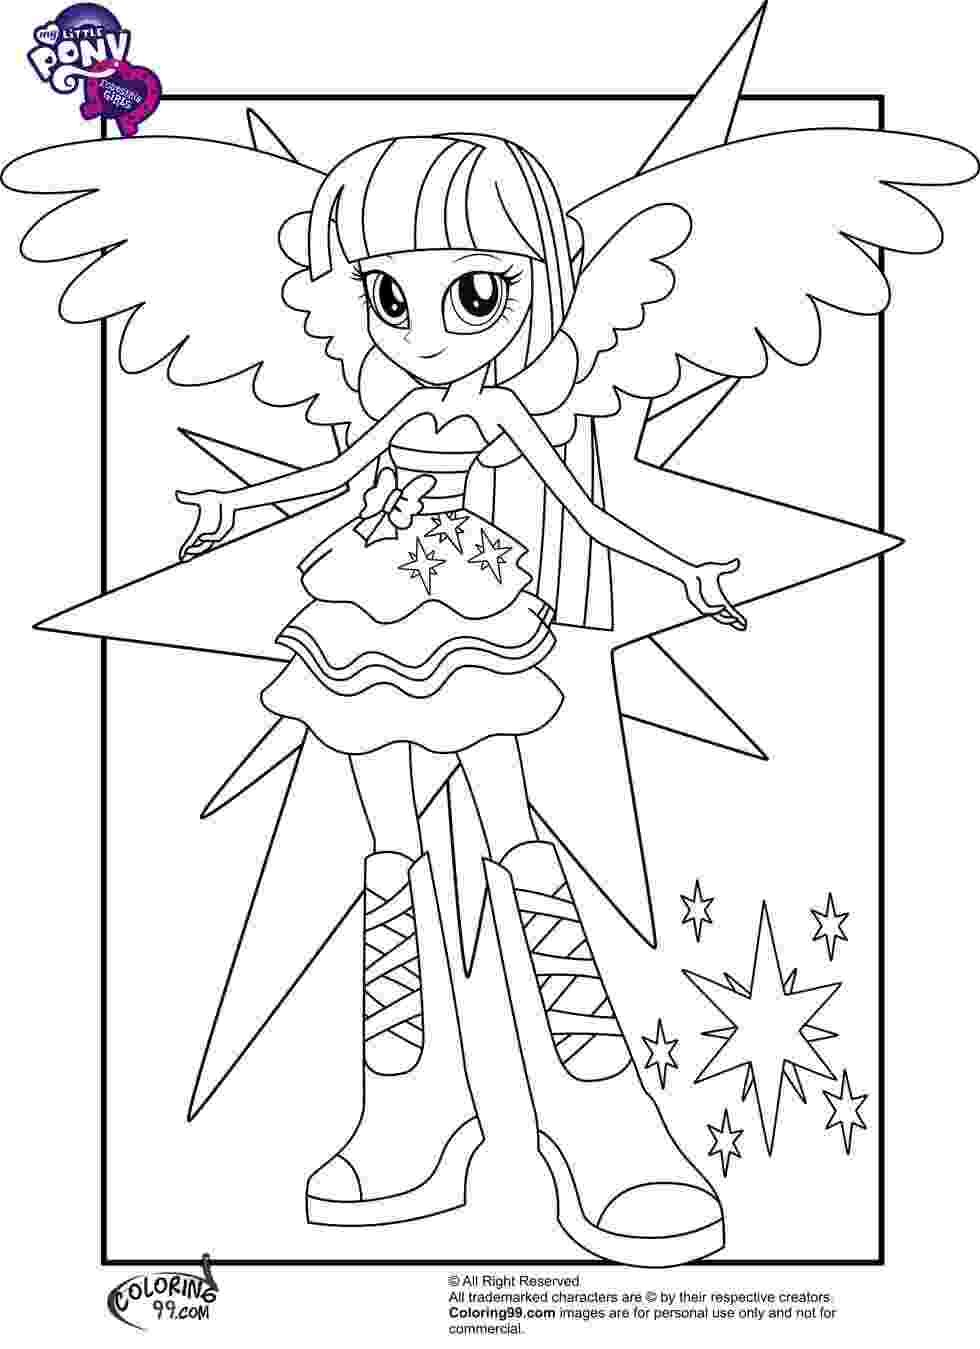 my little pony equestria coloring pages my little pony equestria girls coloring pages equestria coloring little pony my pages